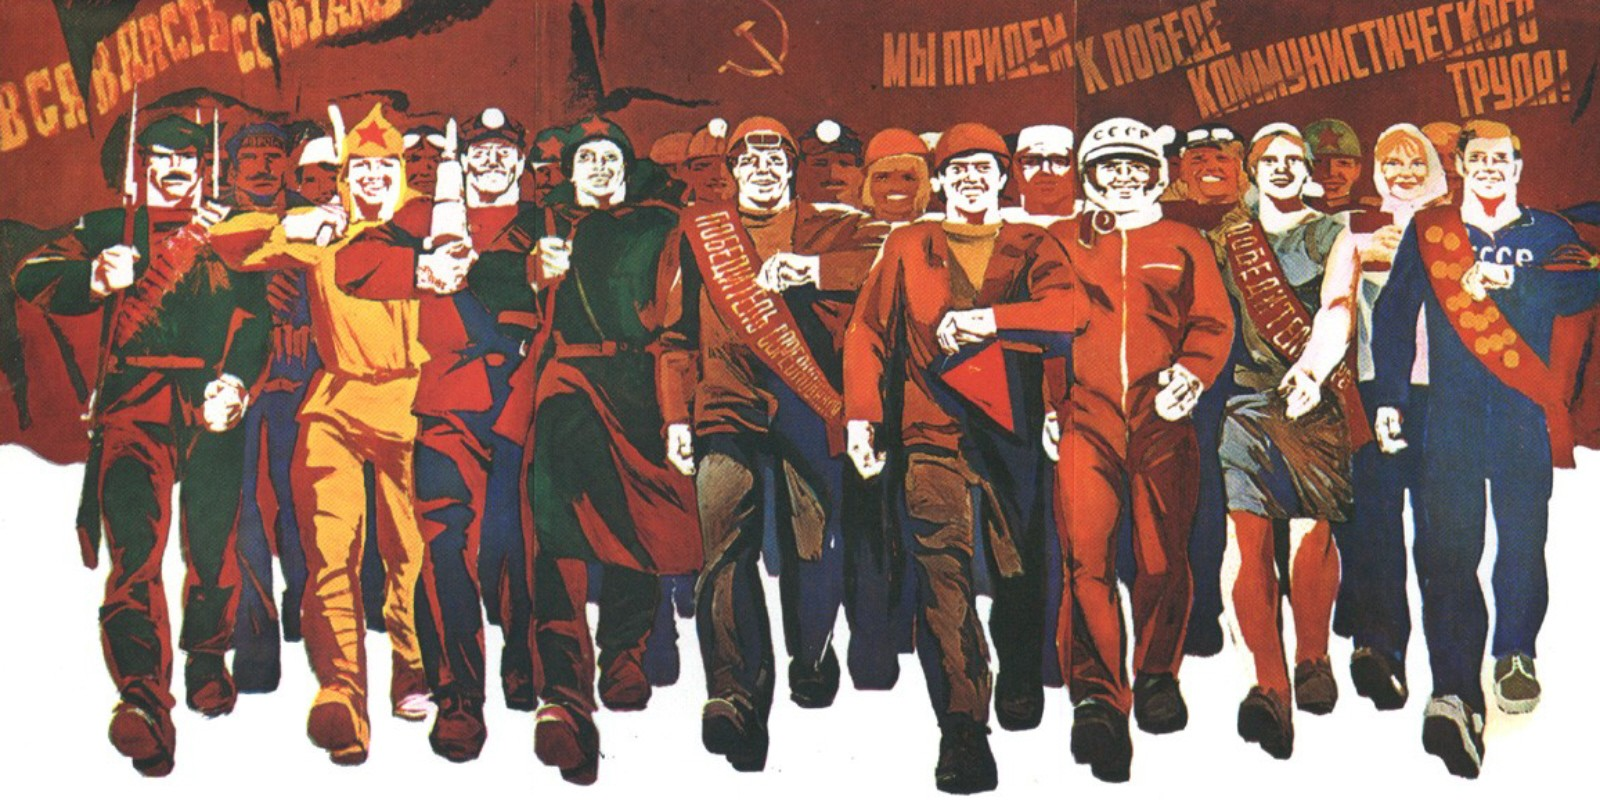 were communist societies dominated by a successful capitalist Other communist countries, such as east germany, were essentially satellites  it appeared that communism could supersede democracy as the dominant political  economy that has seen some of its socialist ideals supplanted by capitalism.